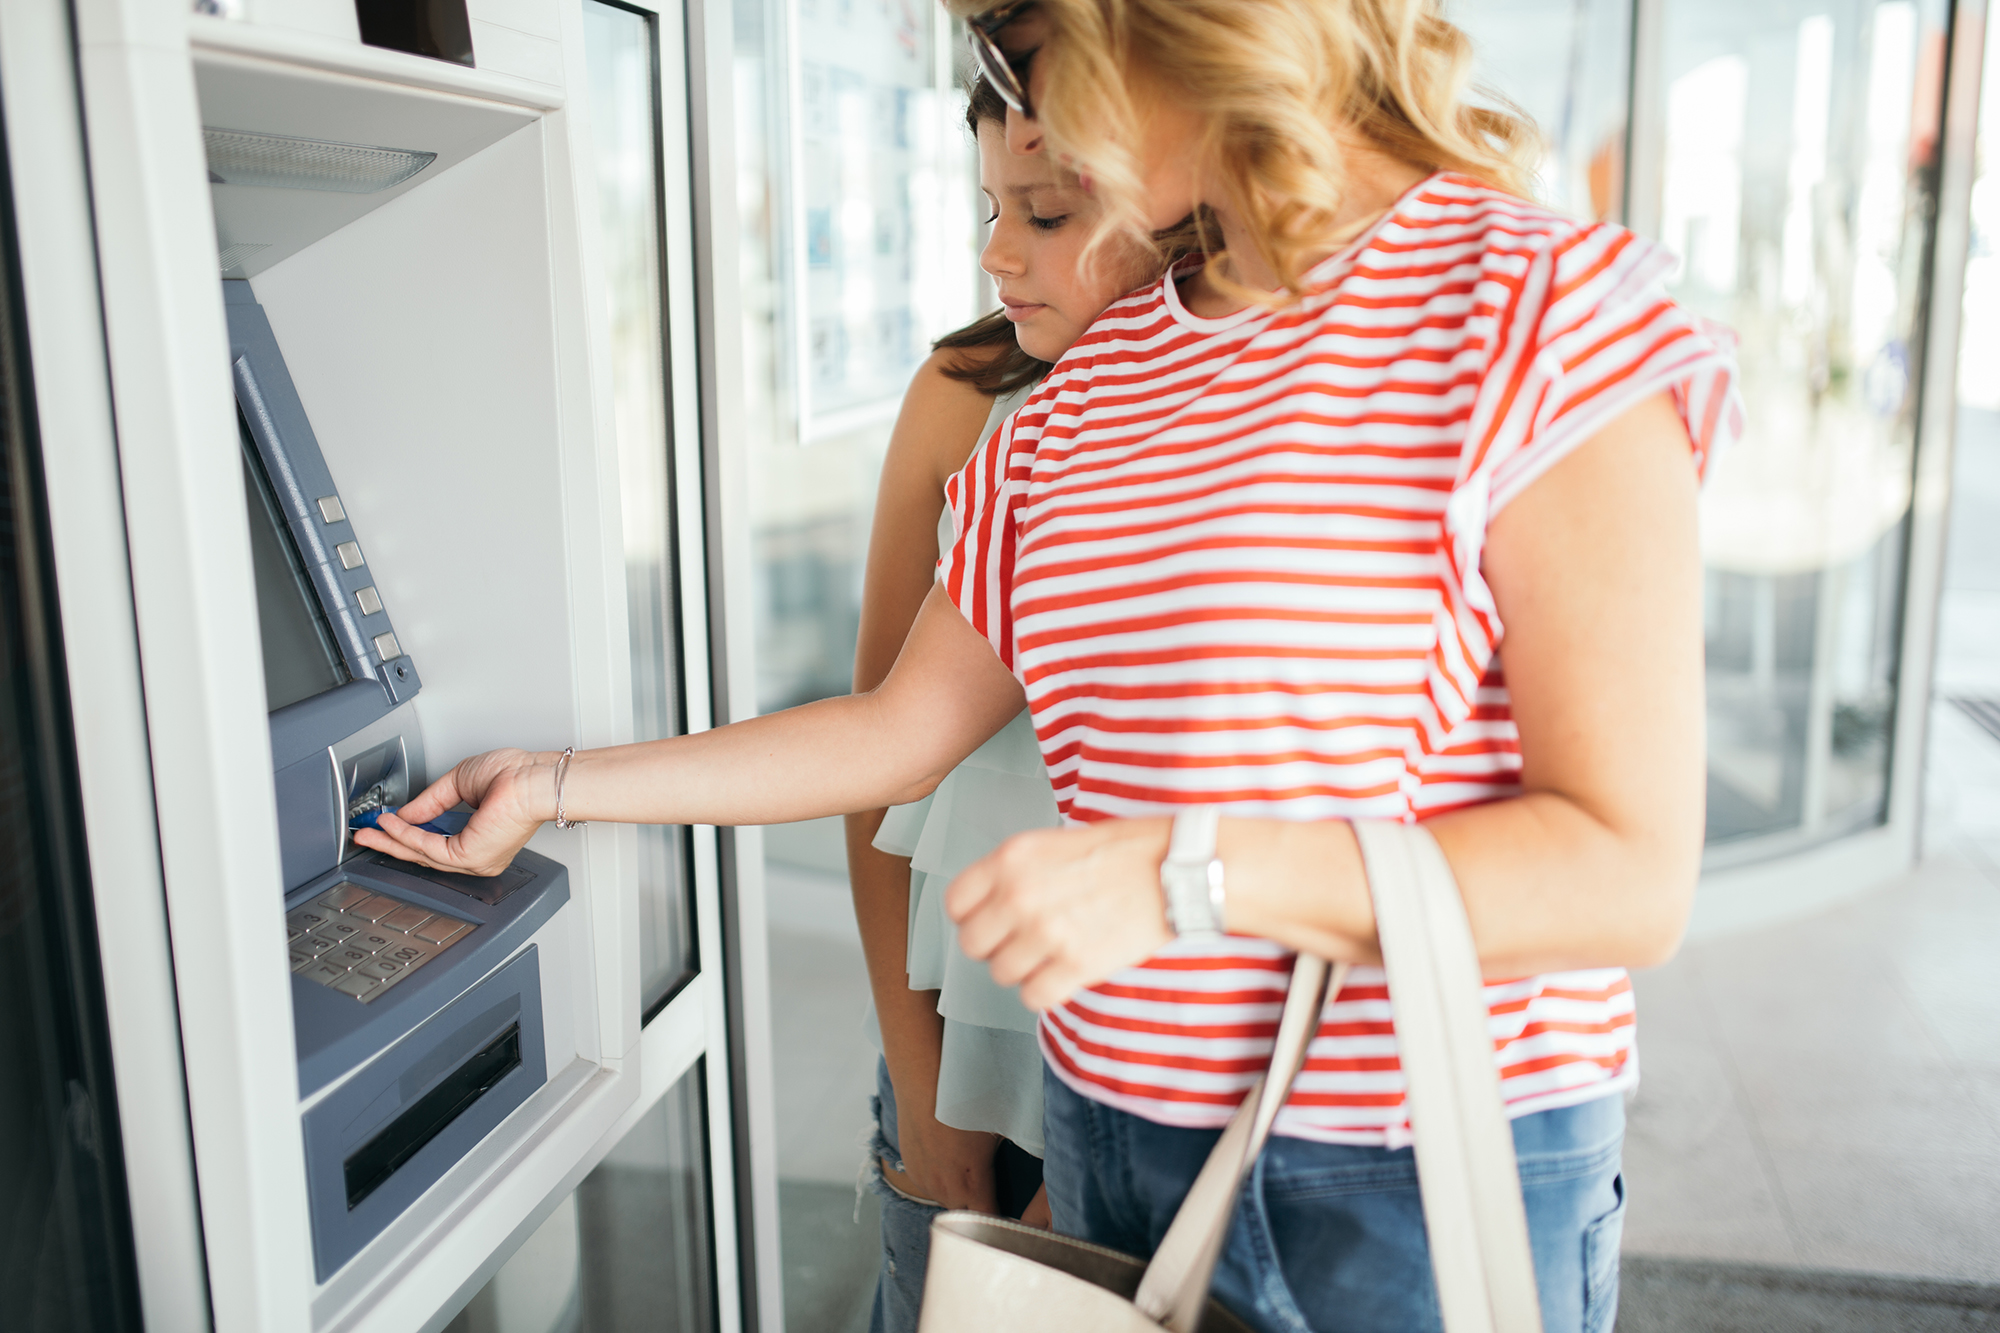 Older sister with younger sibling walks up to an ITM to make a transaction on a sunny summer day.